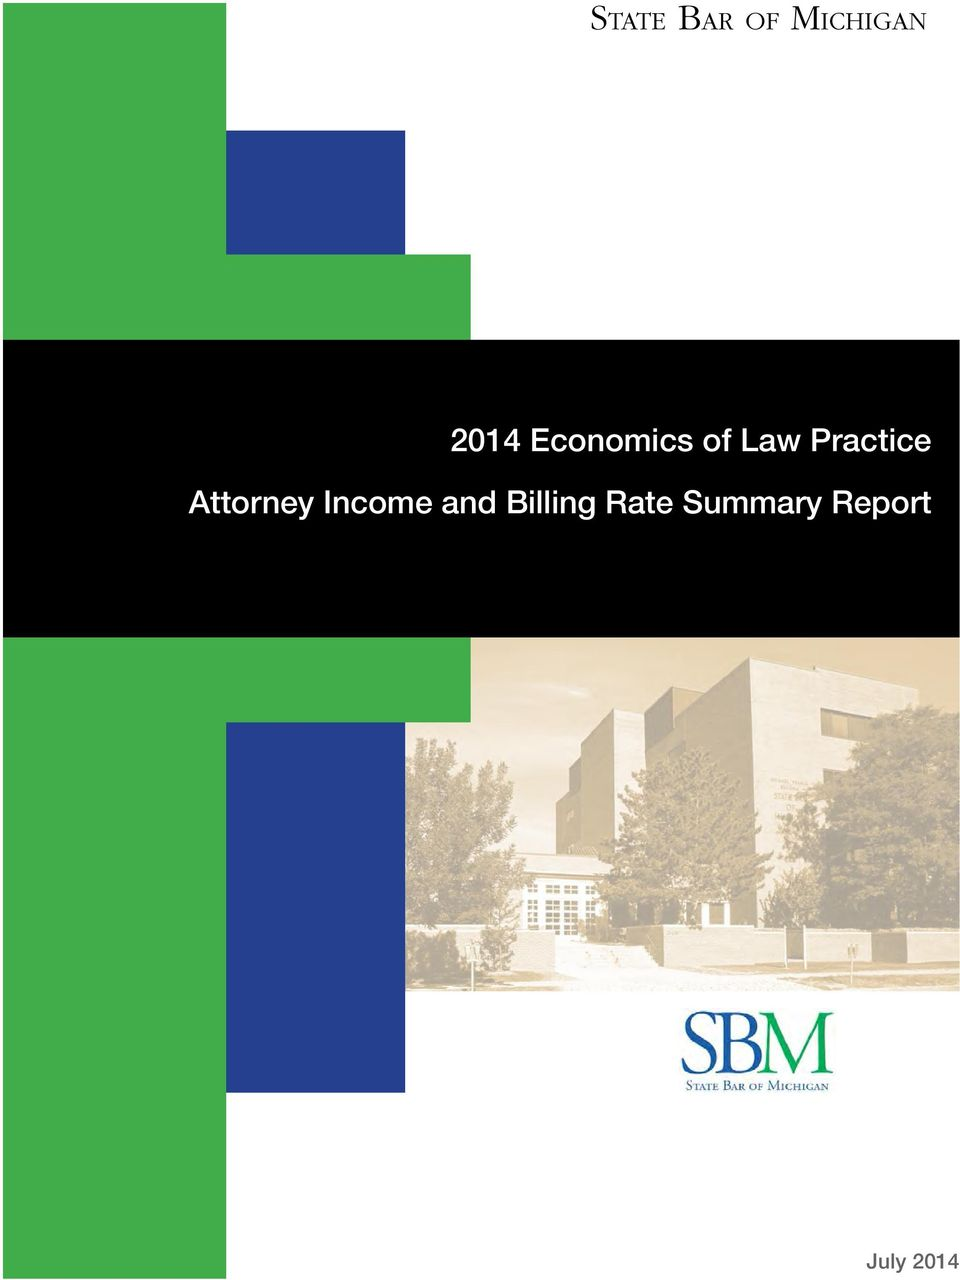 Attorney Income and Billing